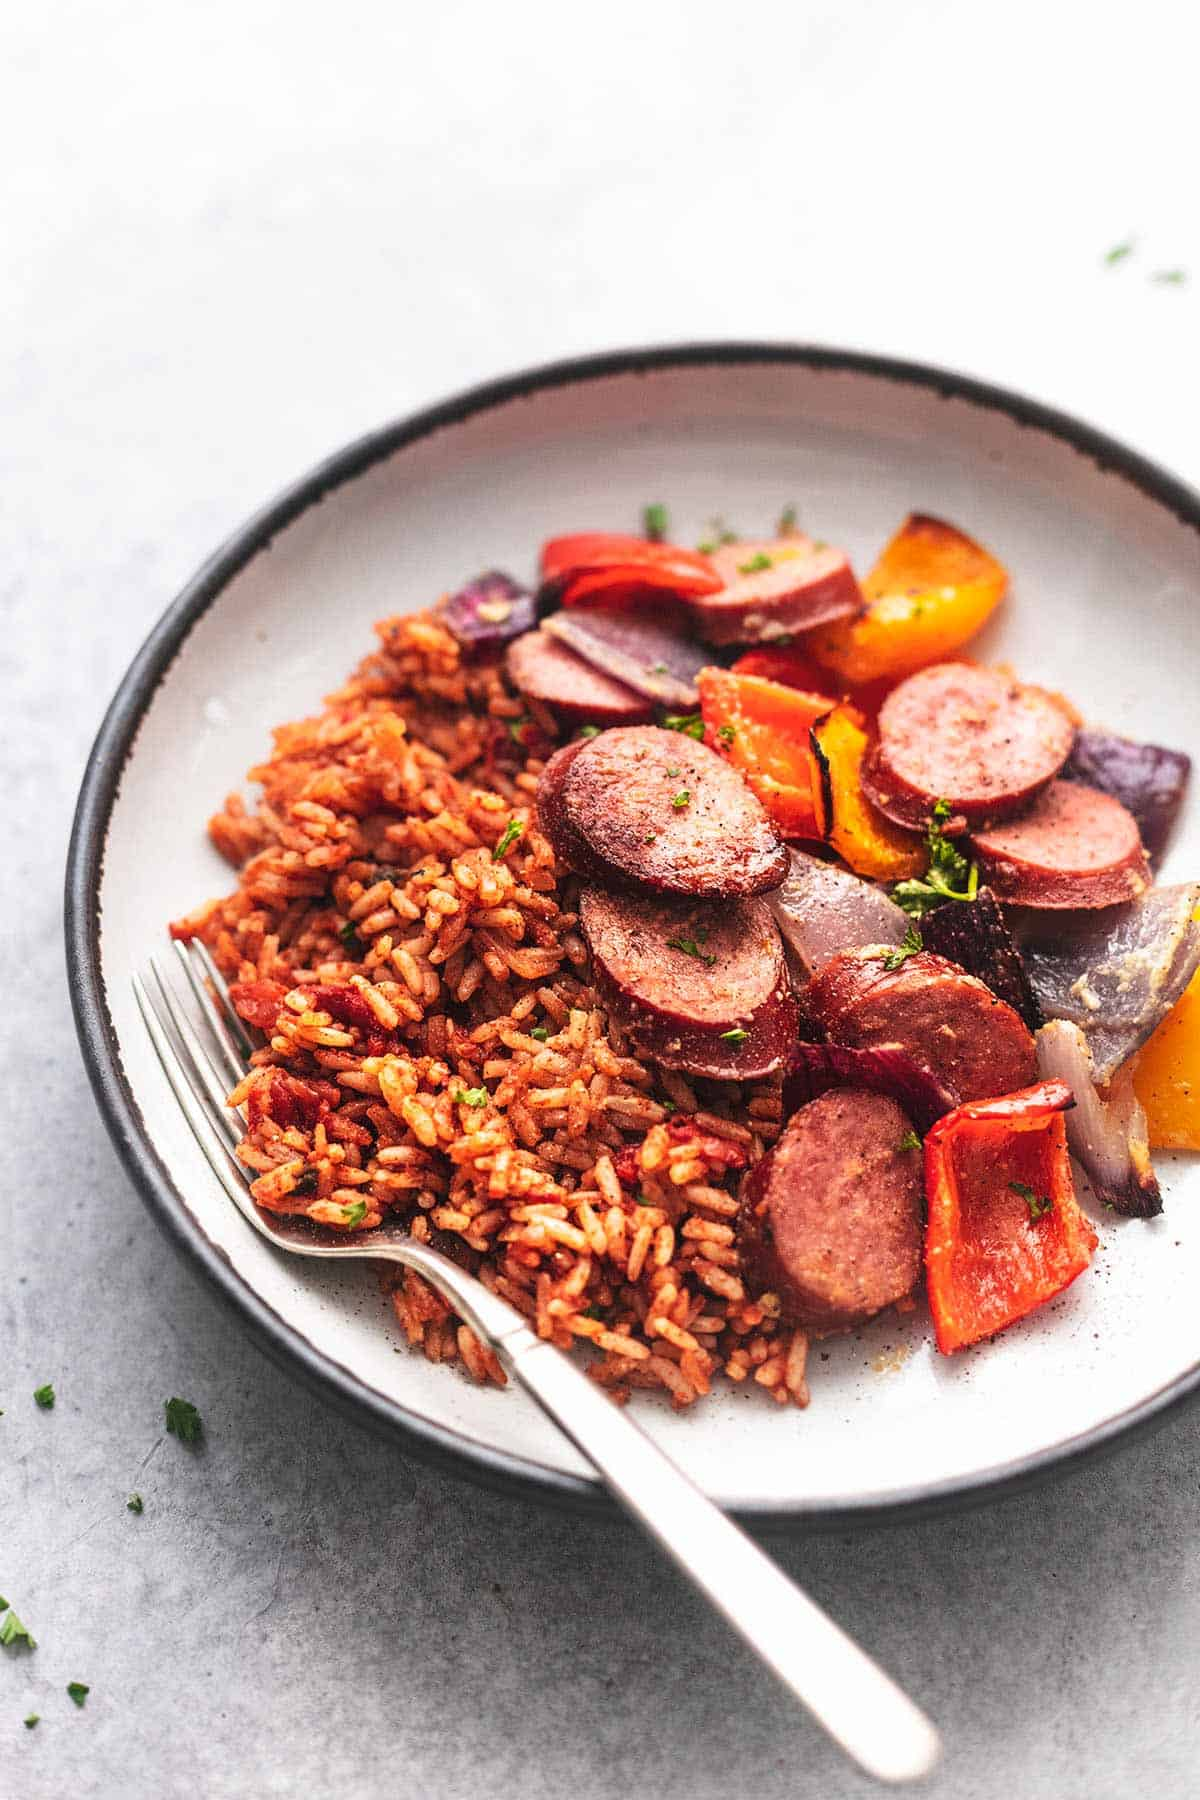 sausage and vegetables and rice on a plate with a fork